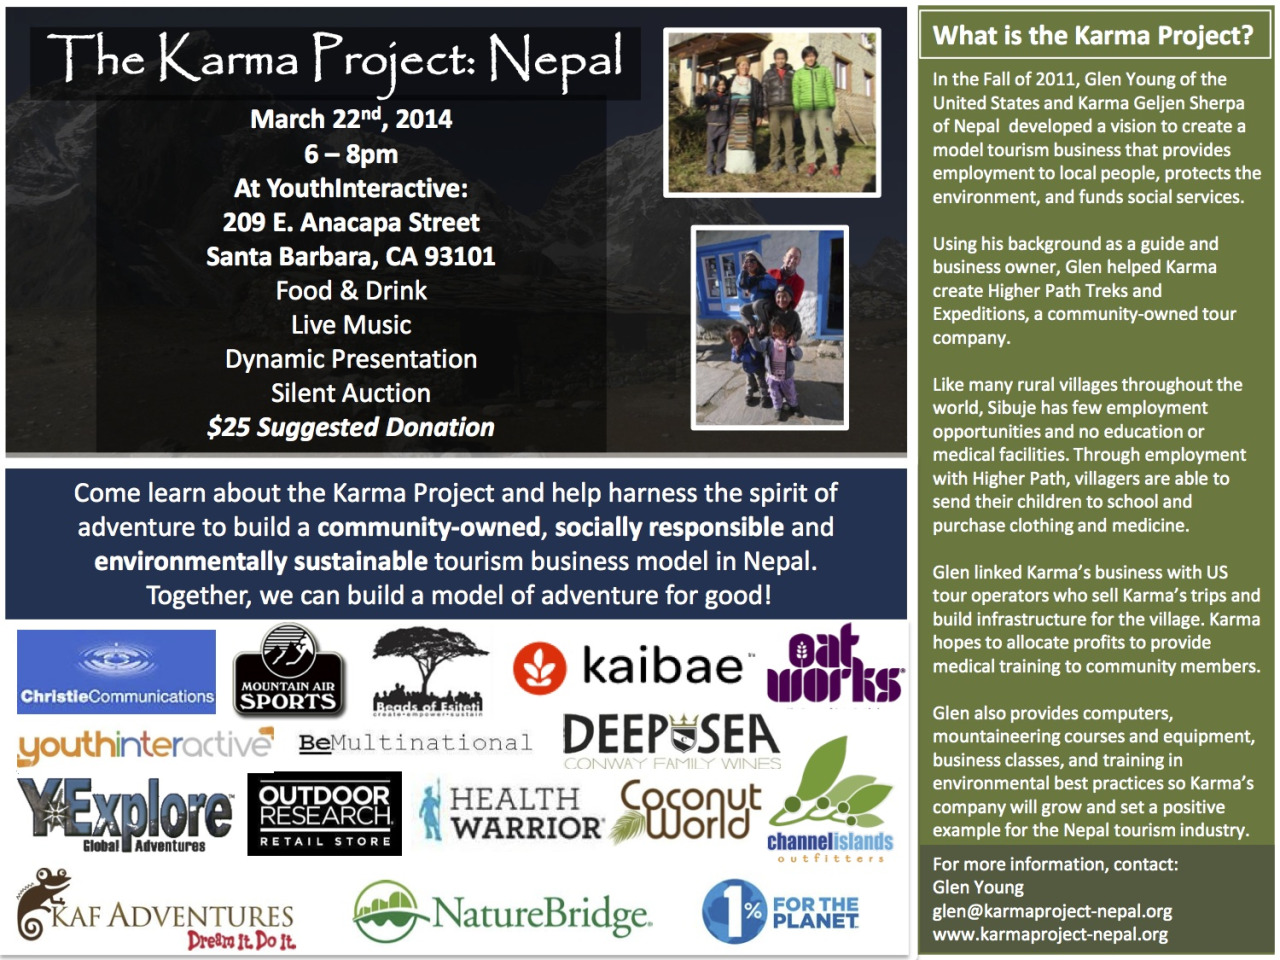 Youth Interactive is proud to host The Karma Project: Nepal fundraiser on March 22, 2014! Mark your calendars and stop by for a great cause, some live music, food and drinks, and an awesome presentation about creating a economically sustainable tourism project in Nepal!    Check out the link below to get more information about The Karma Project: Nepal   http://www.indiegogo.com/projects/the-karma-project     #Youthinteractive #Santabarbara #TheKarmaProject:Nepal #Art #Givingback